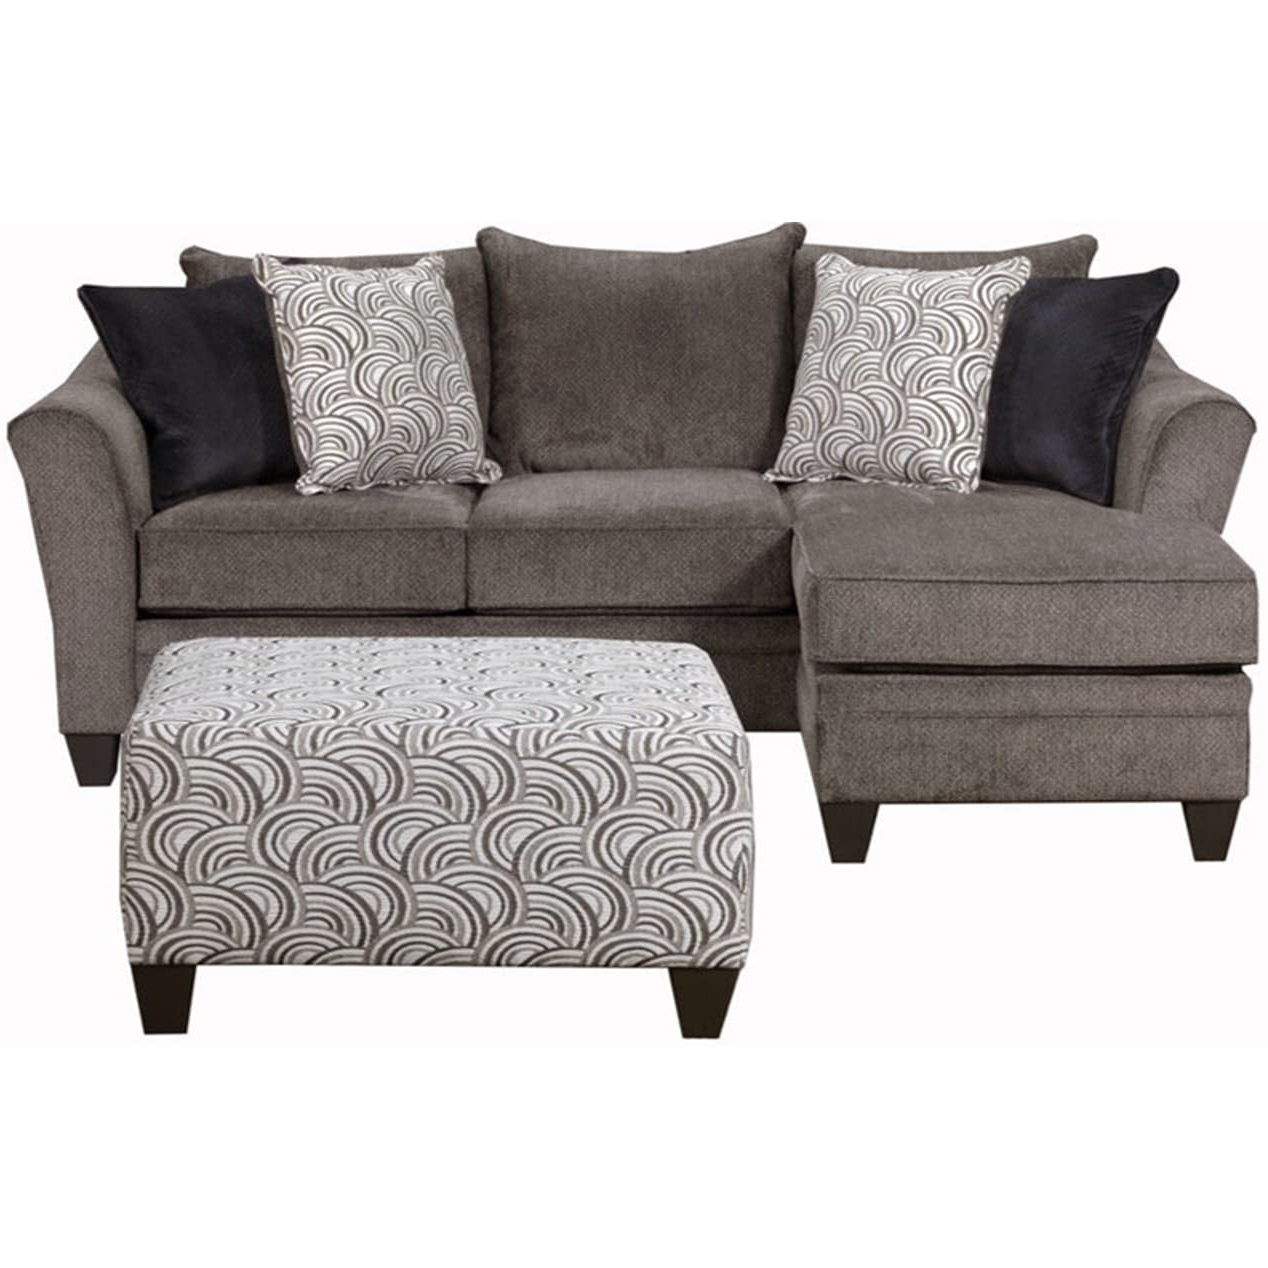 Simmons Upholstery Albany Pewter Sofa Chaise – Free Shipping Today Intended For Most Current Simmons Chaise Sofas (View 11 of 15)